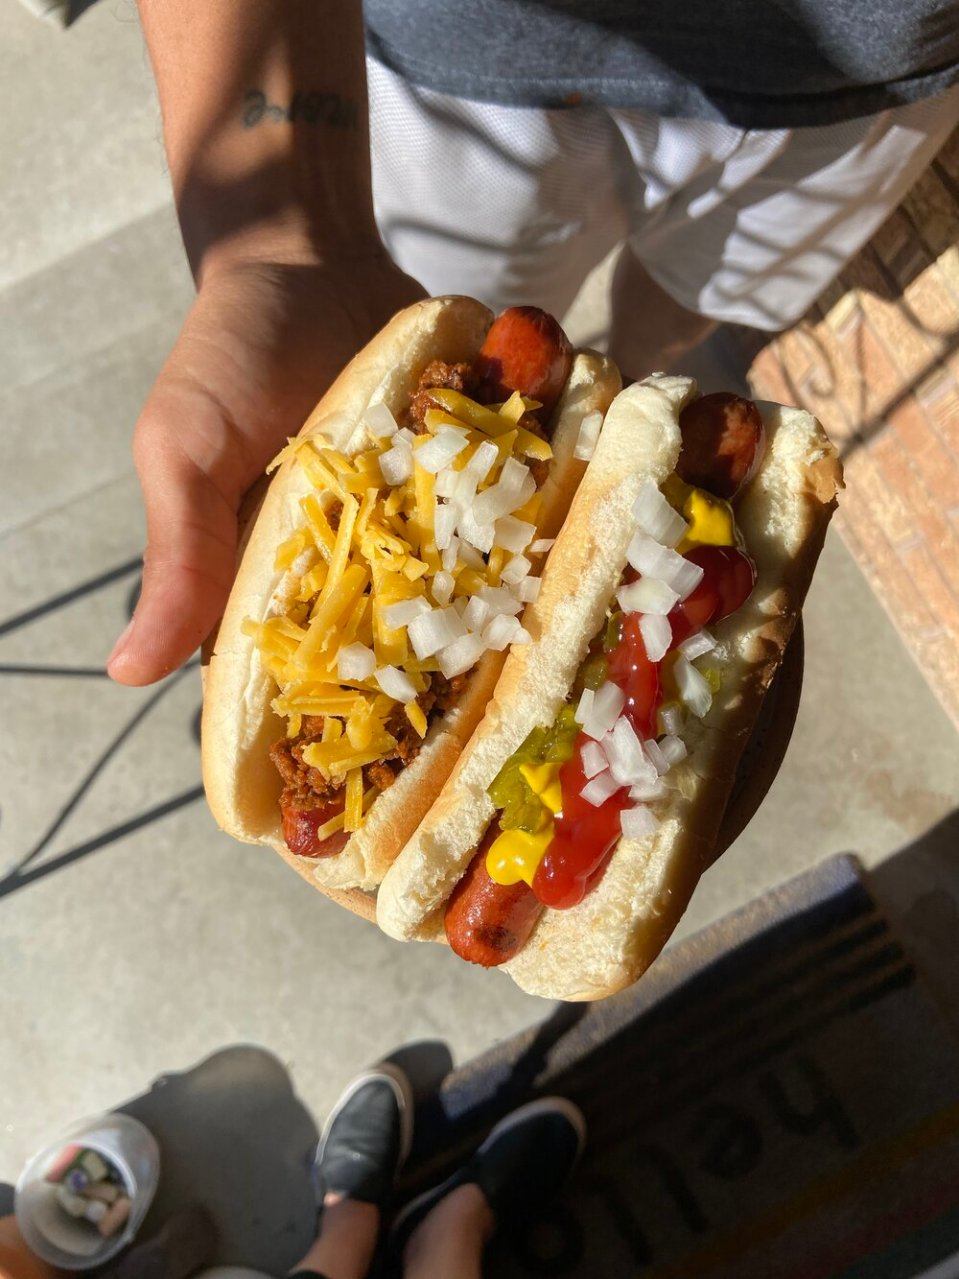 ep 98-hot-dog-dinners-that-arent-boring-didnt-i-just-feed-you.jpg